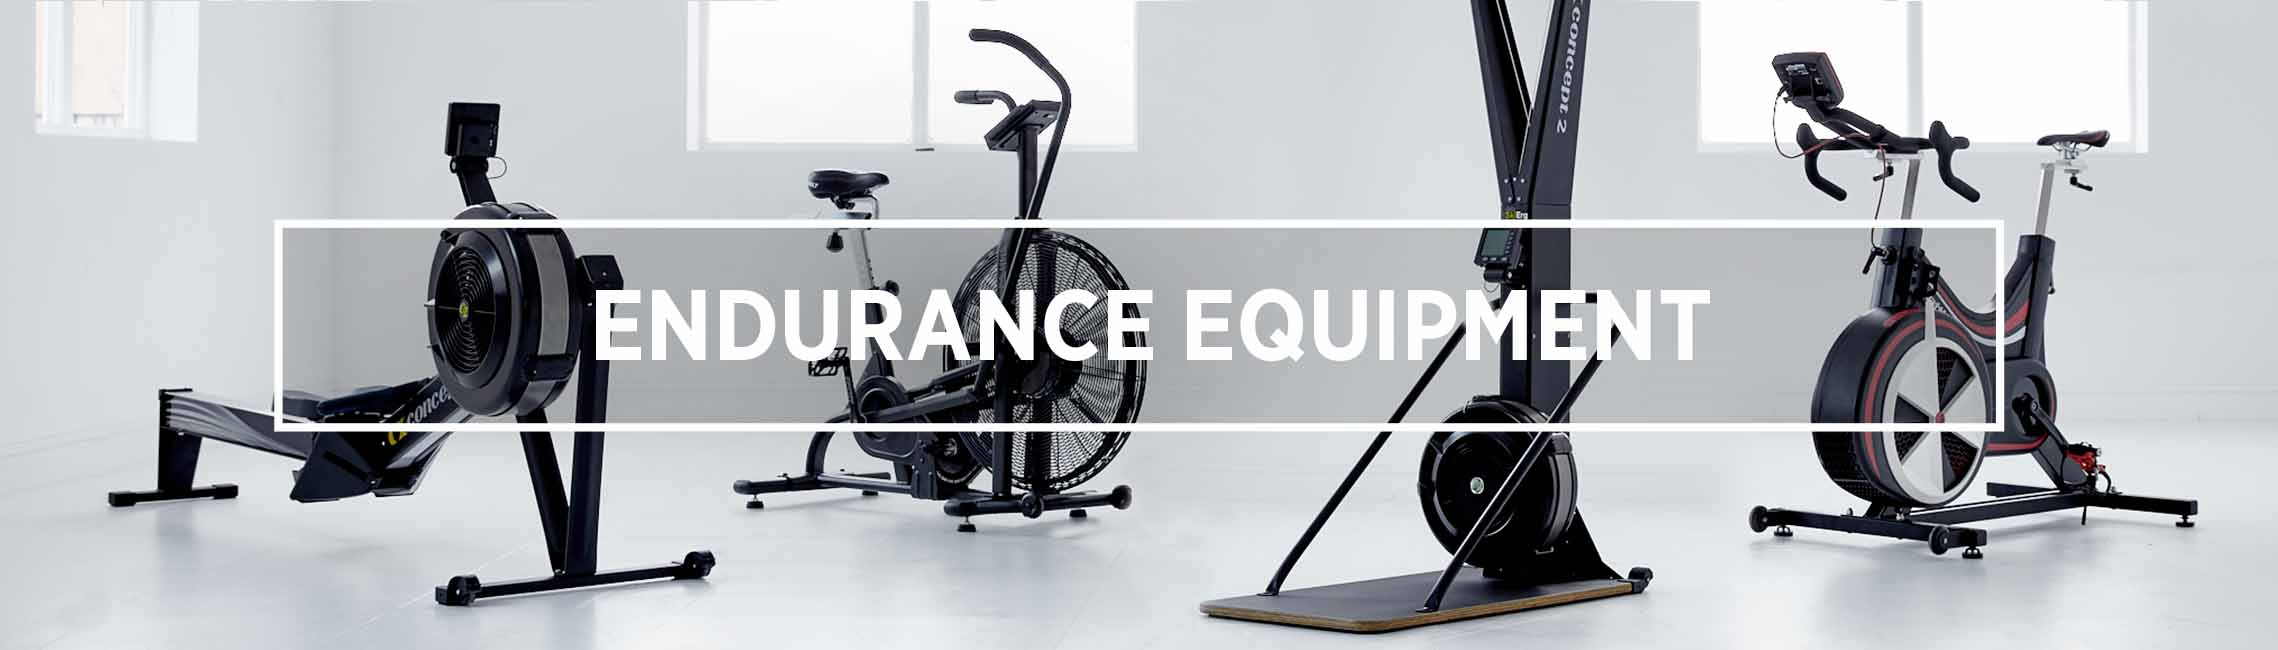 Endurance Equipment